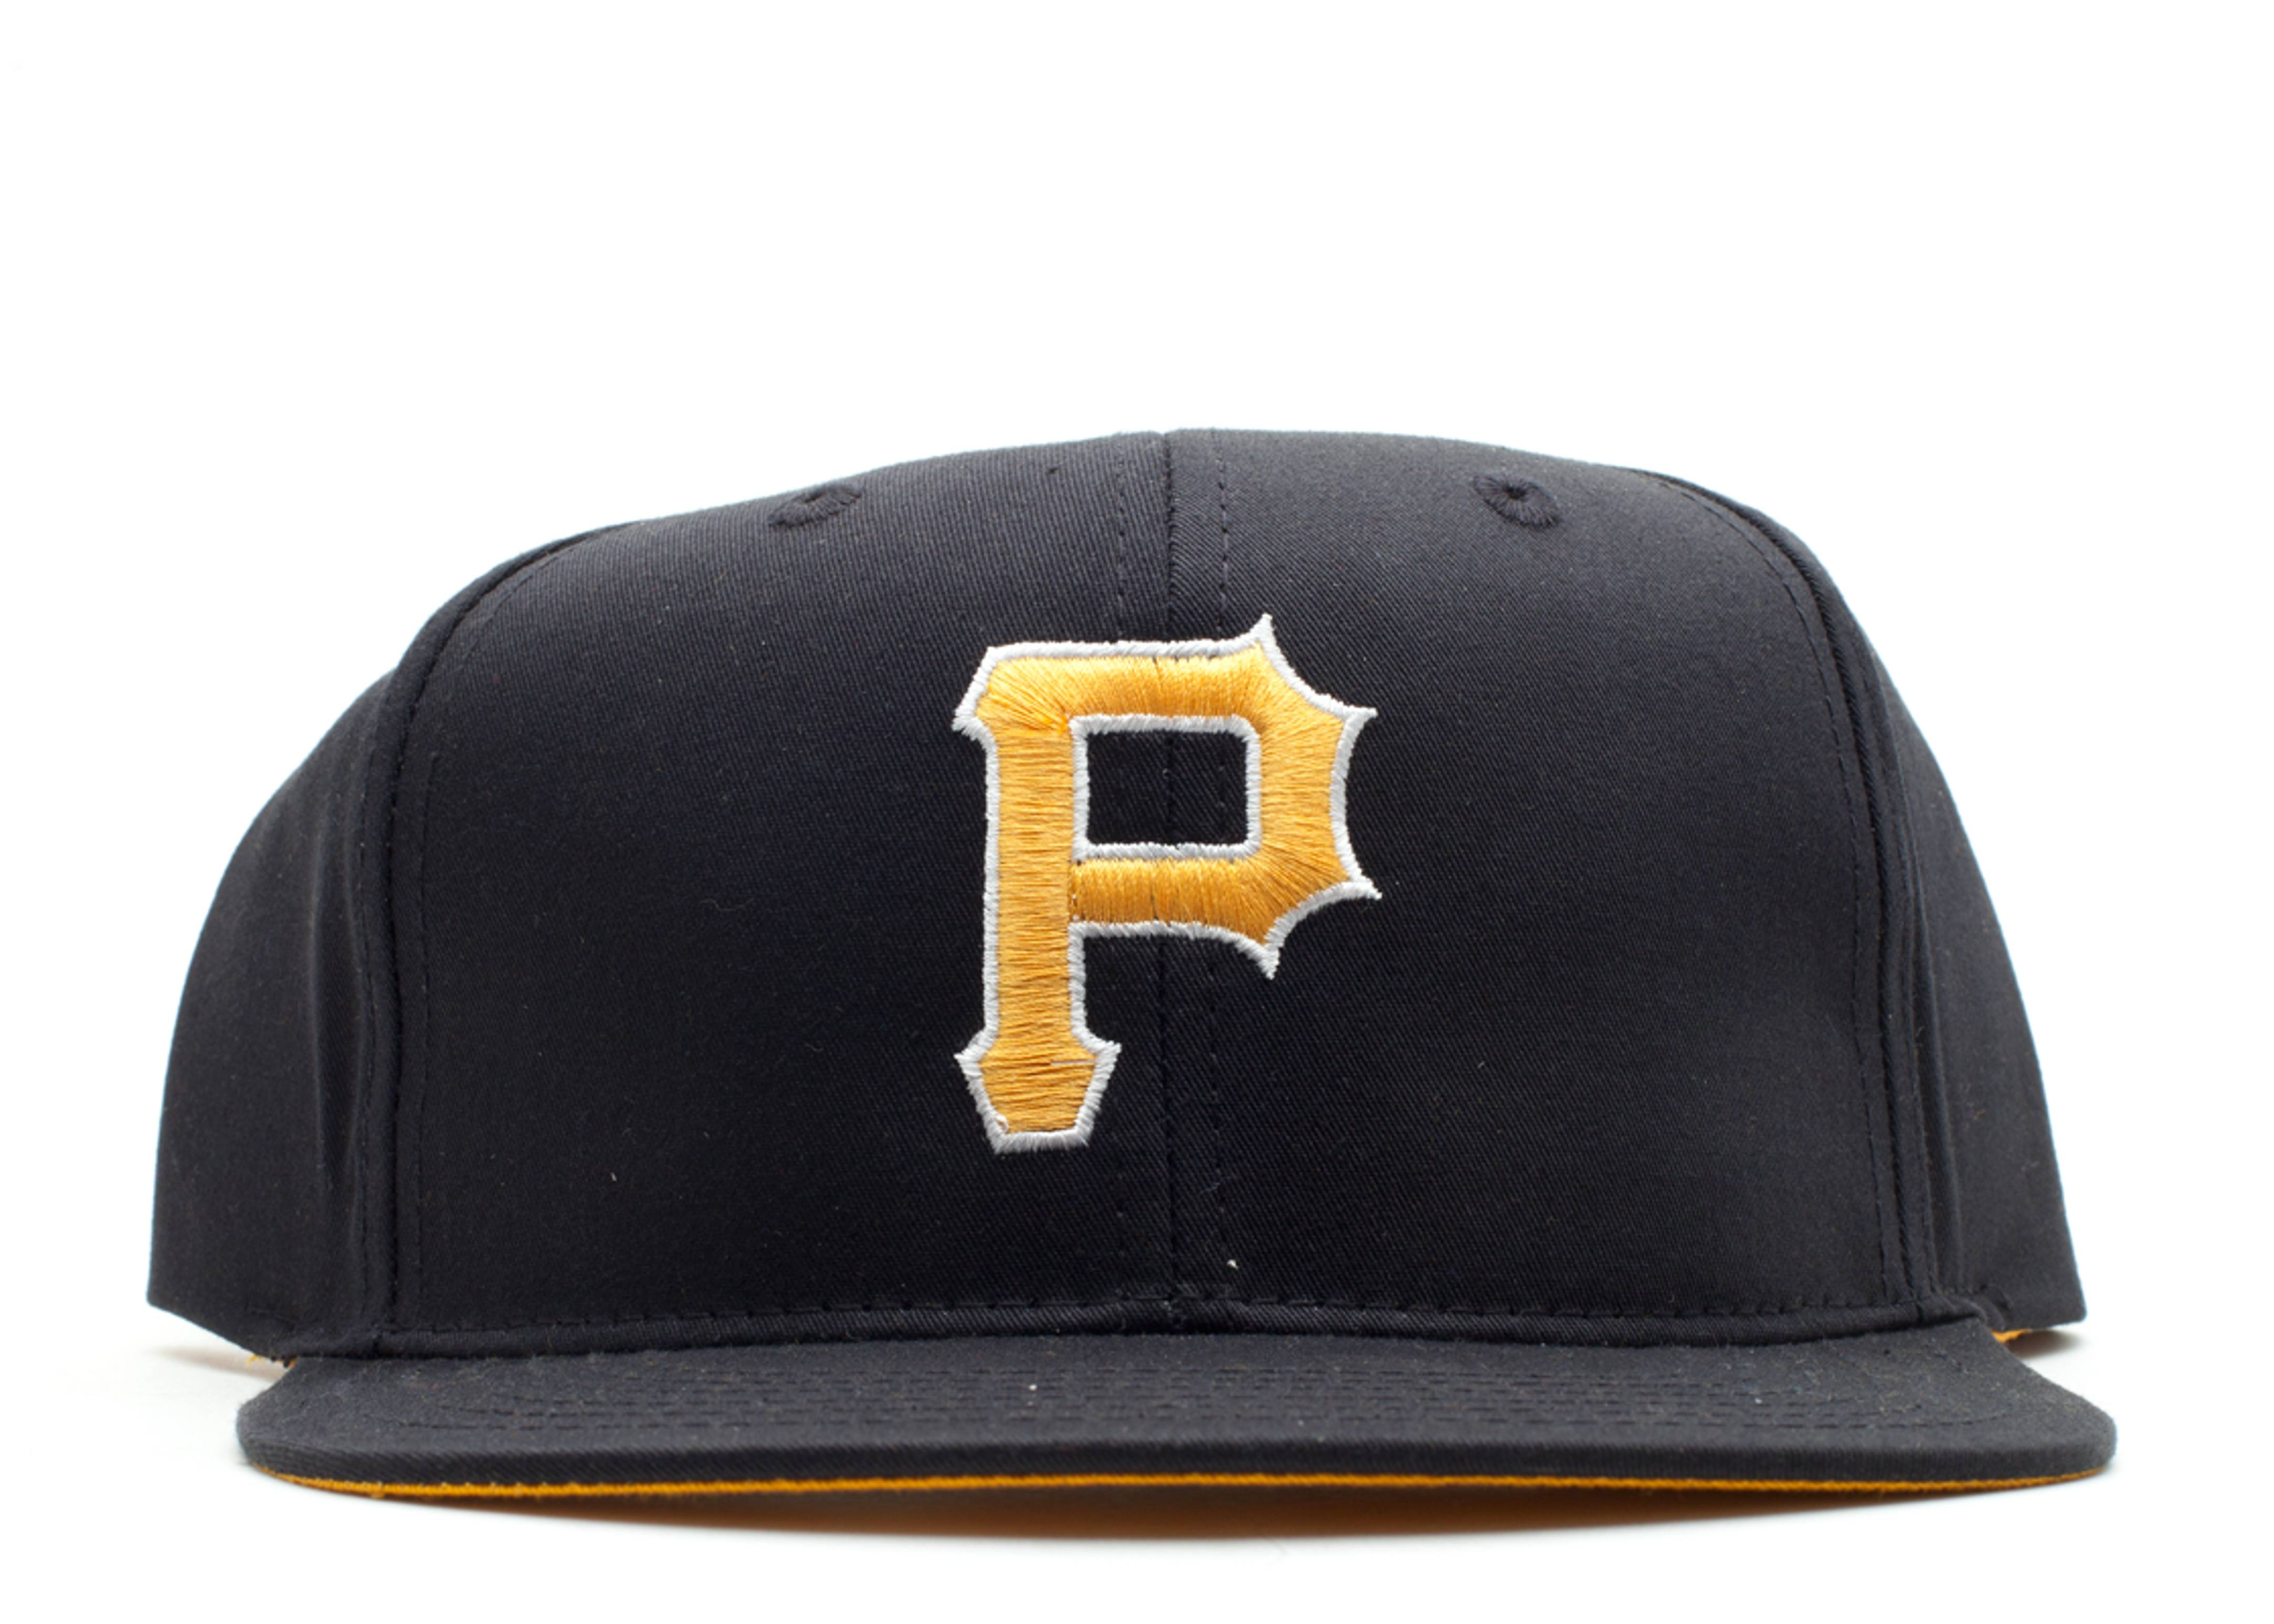 pittsburg pirates snap-back